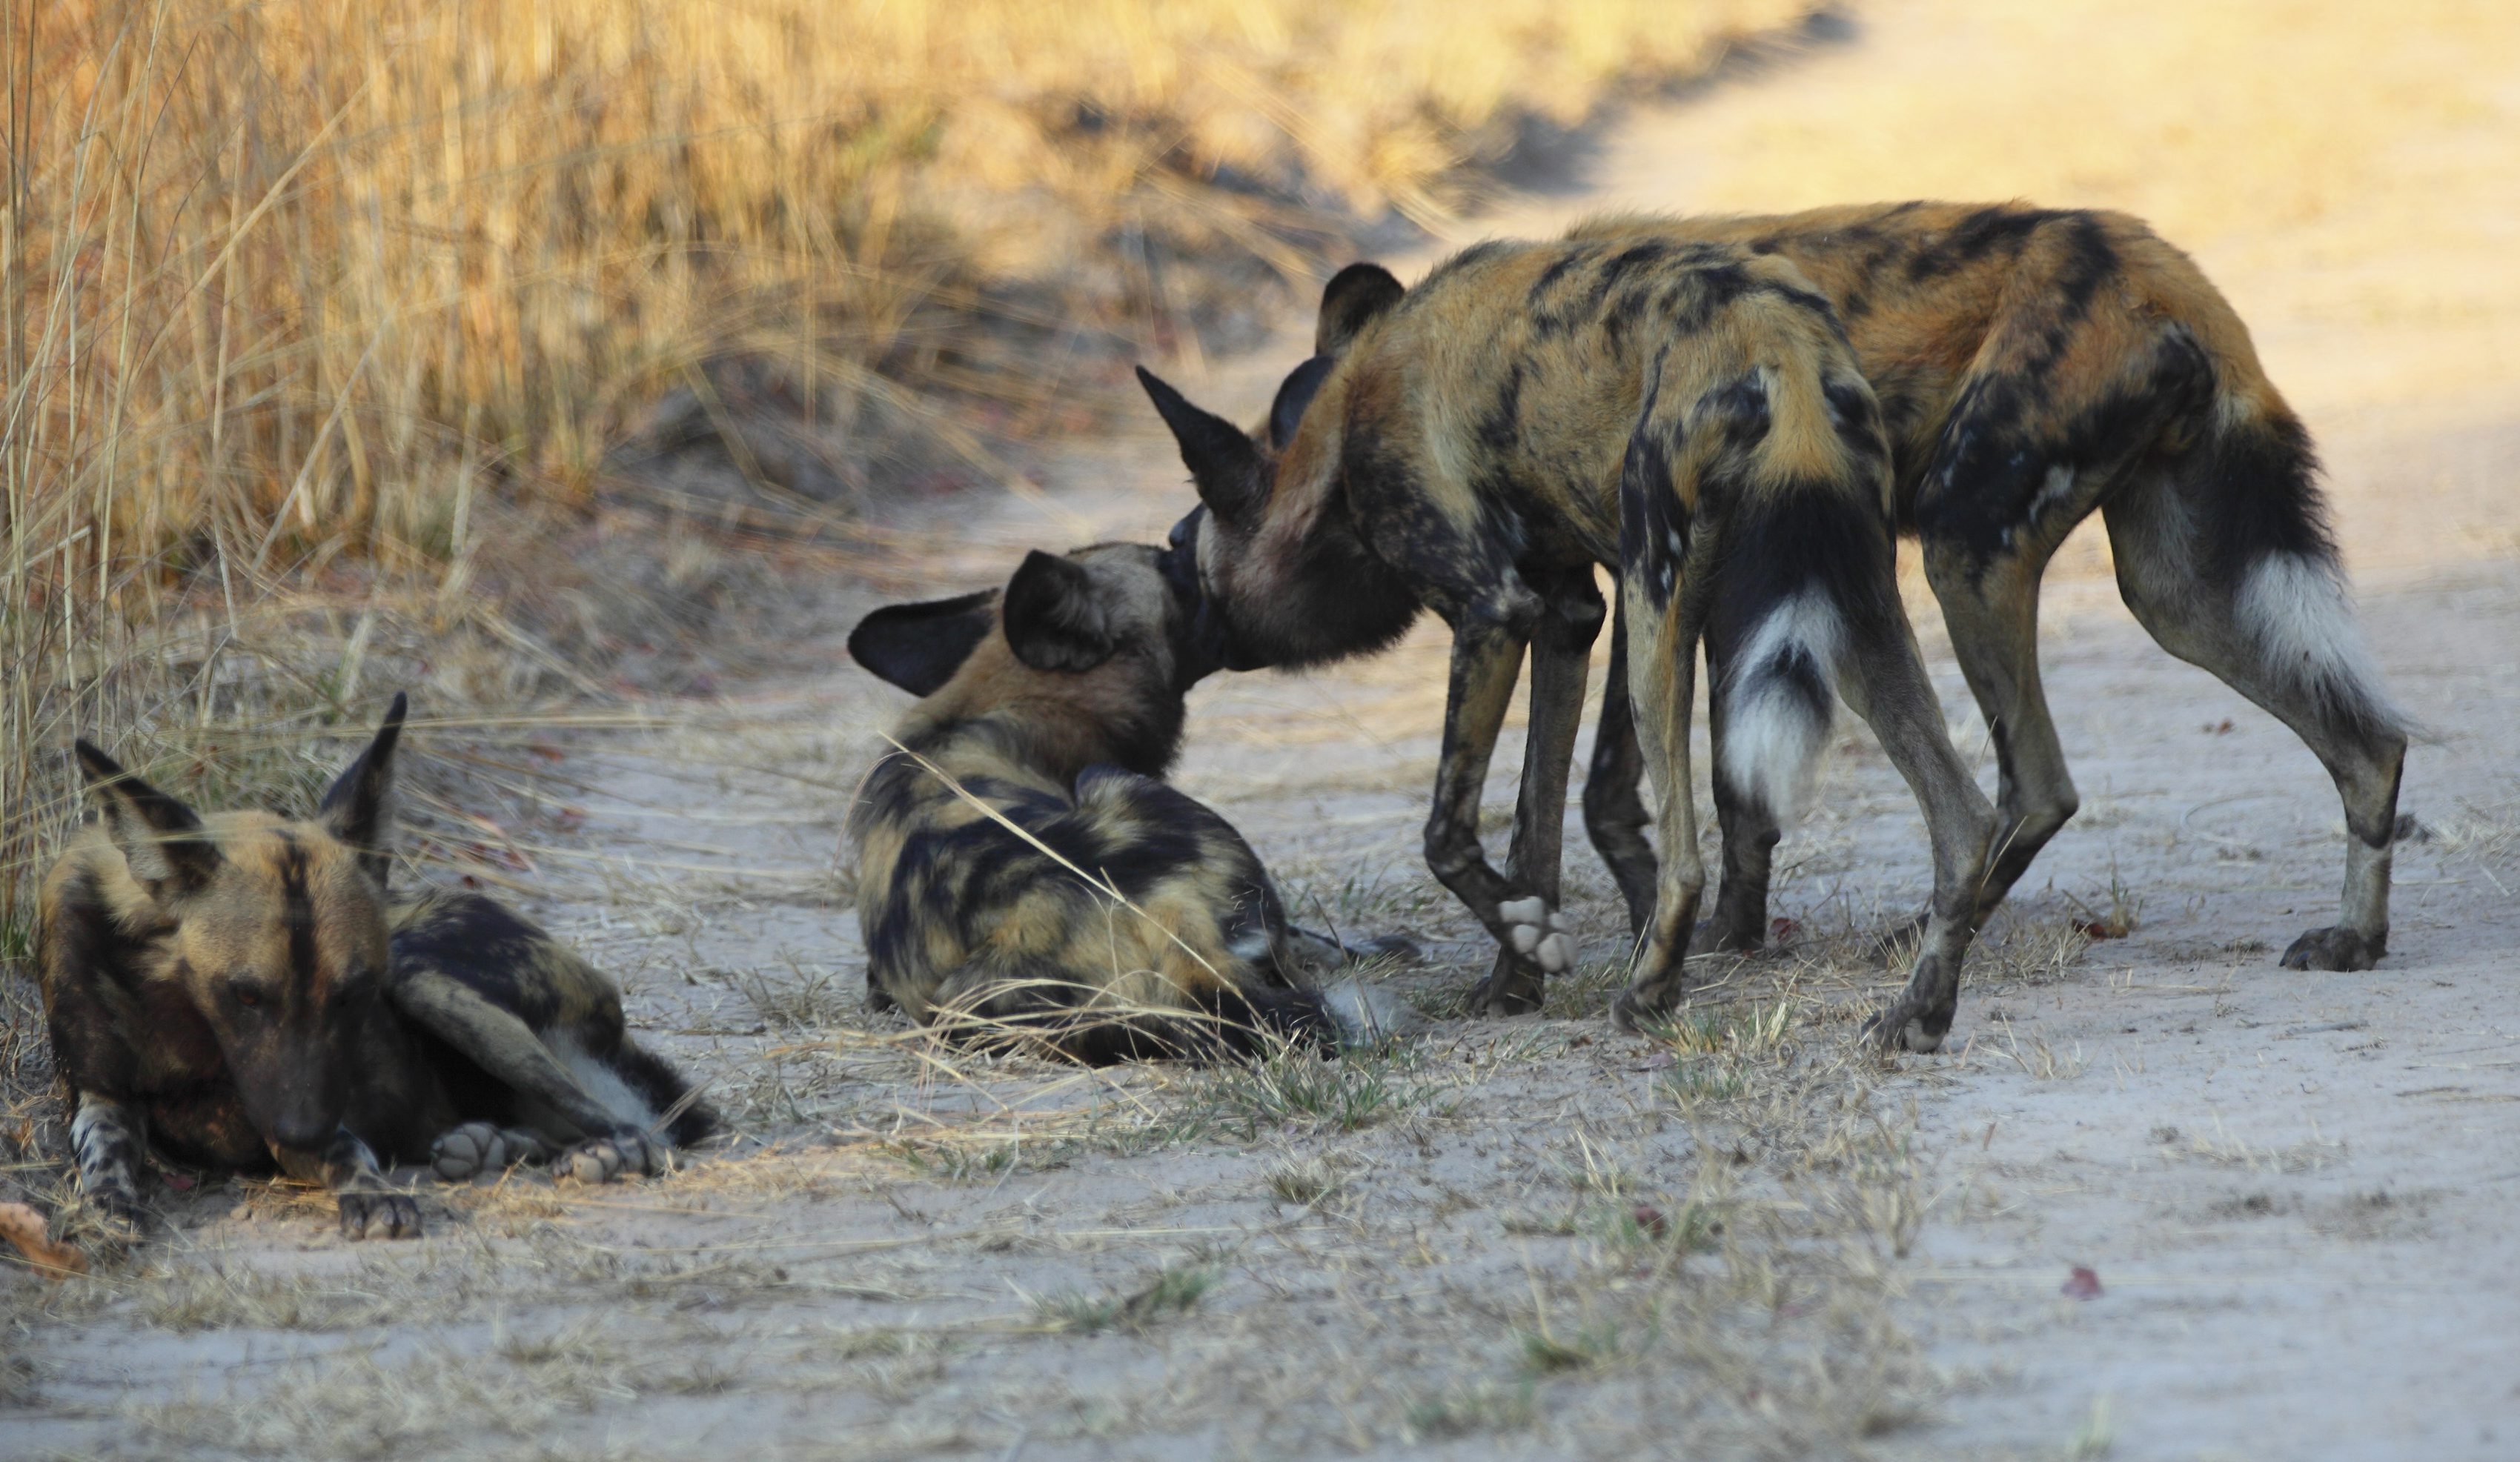 Wild dogs greet each other before a hunt at Kafue National Park in Zambia. The animals are exceptionally social and civic-minded, allowing pups to eat first and feeding injured pack members.